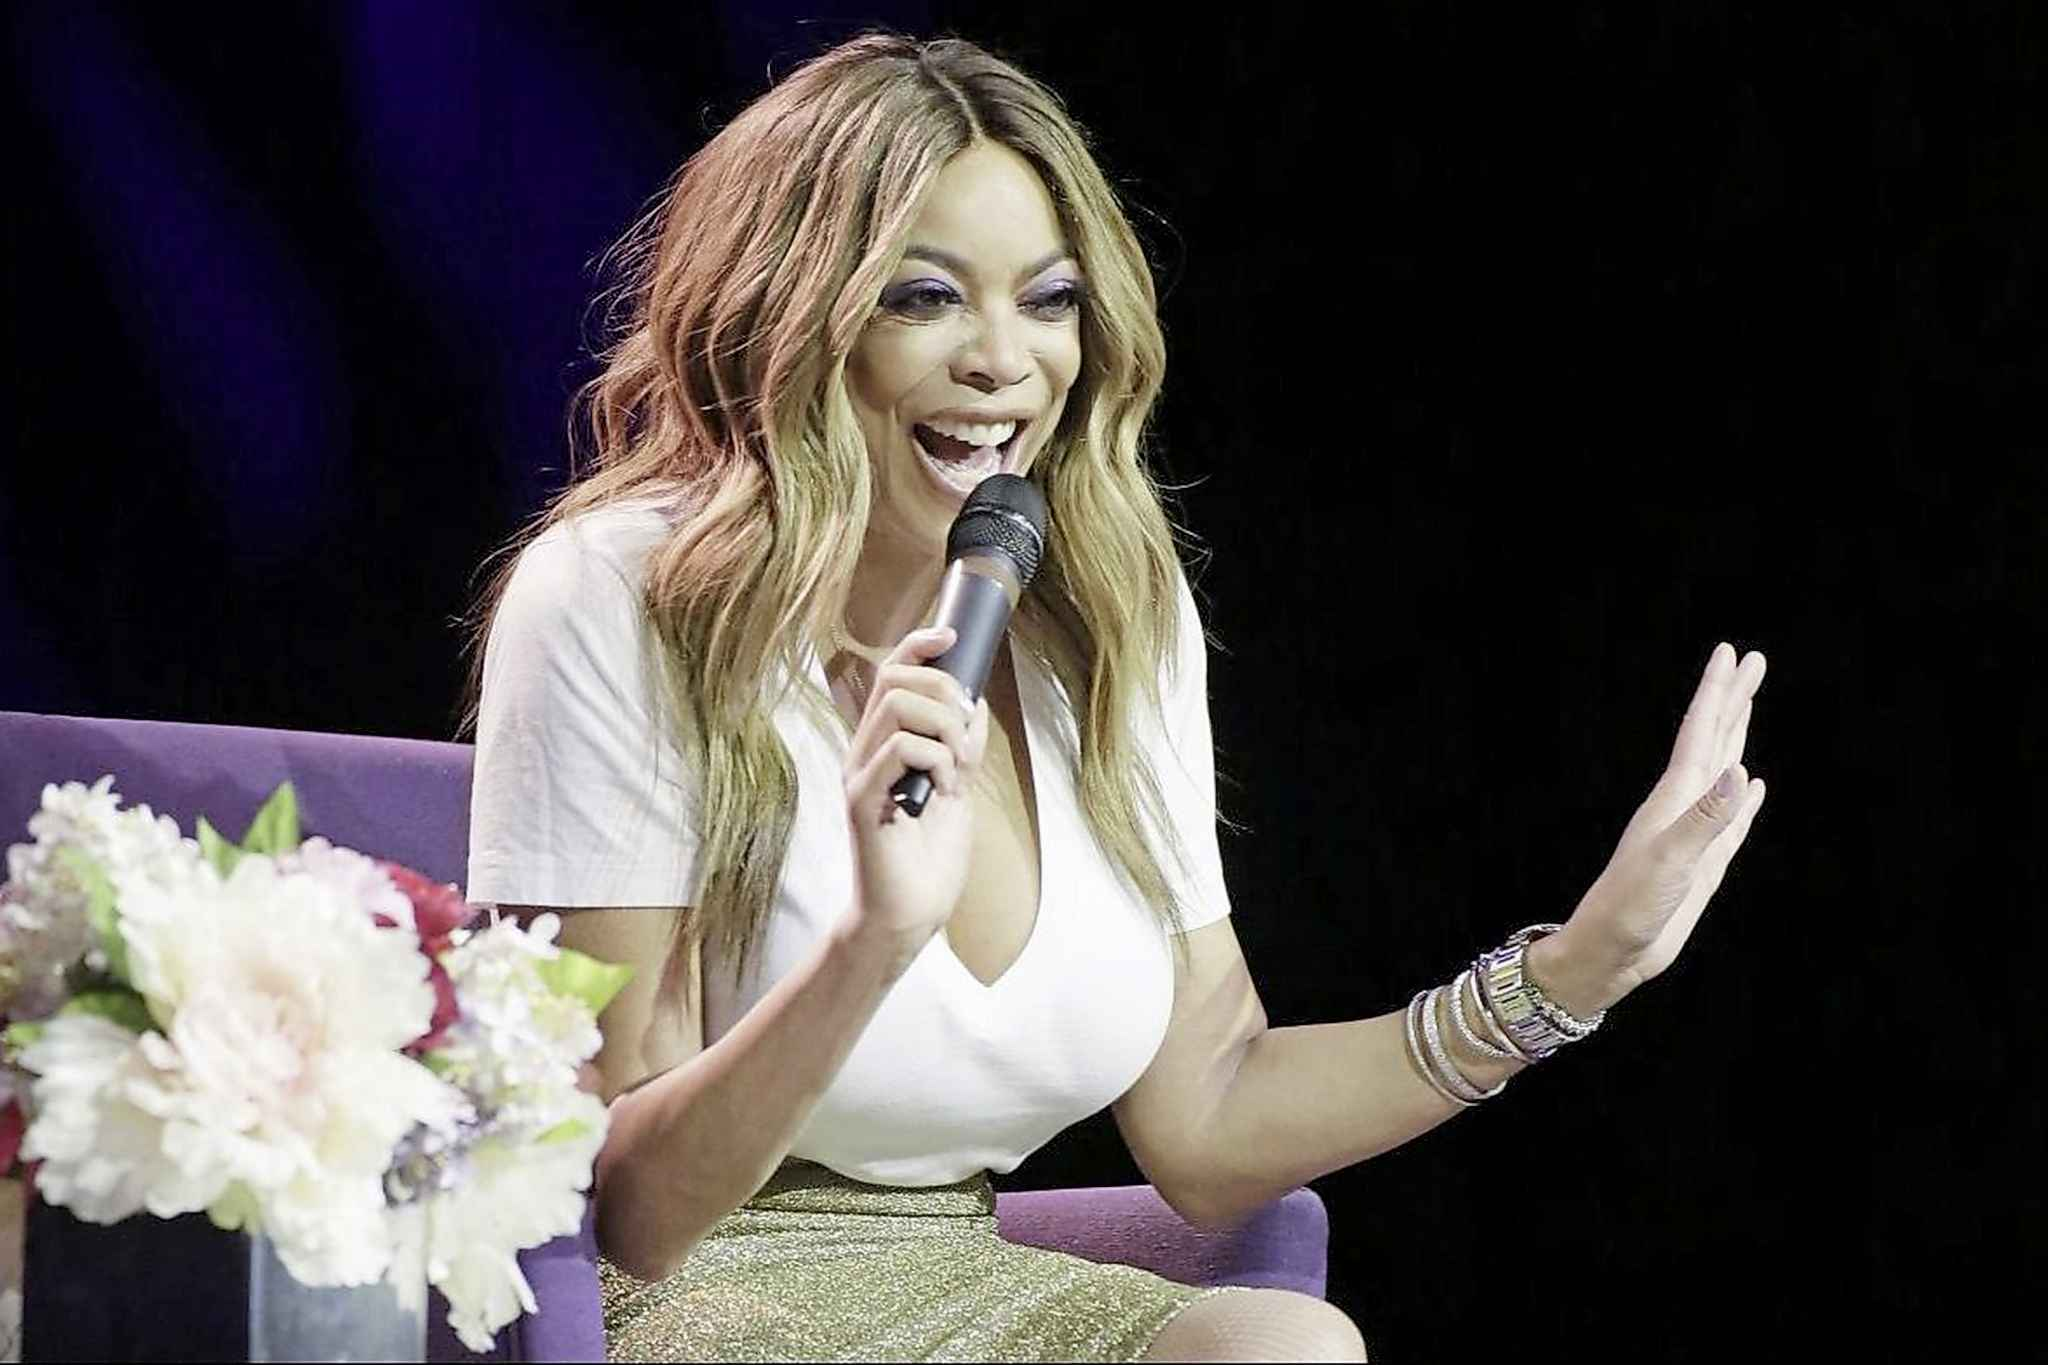 U.S. talk show host Wendy Williams has apologized to the cleft community via Twitter.